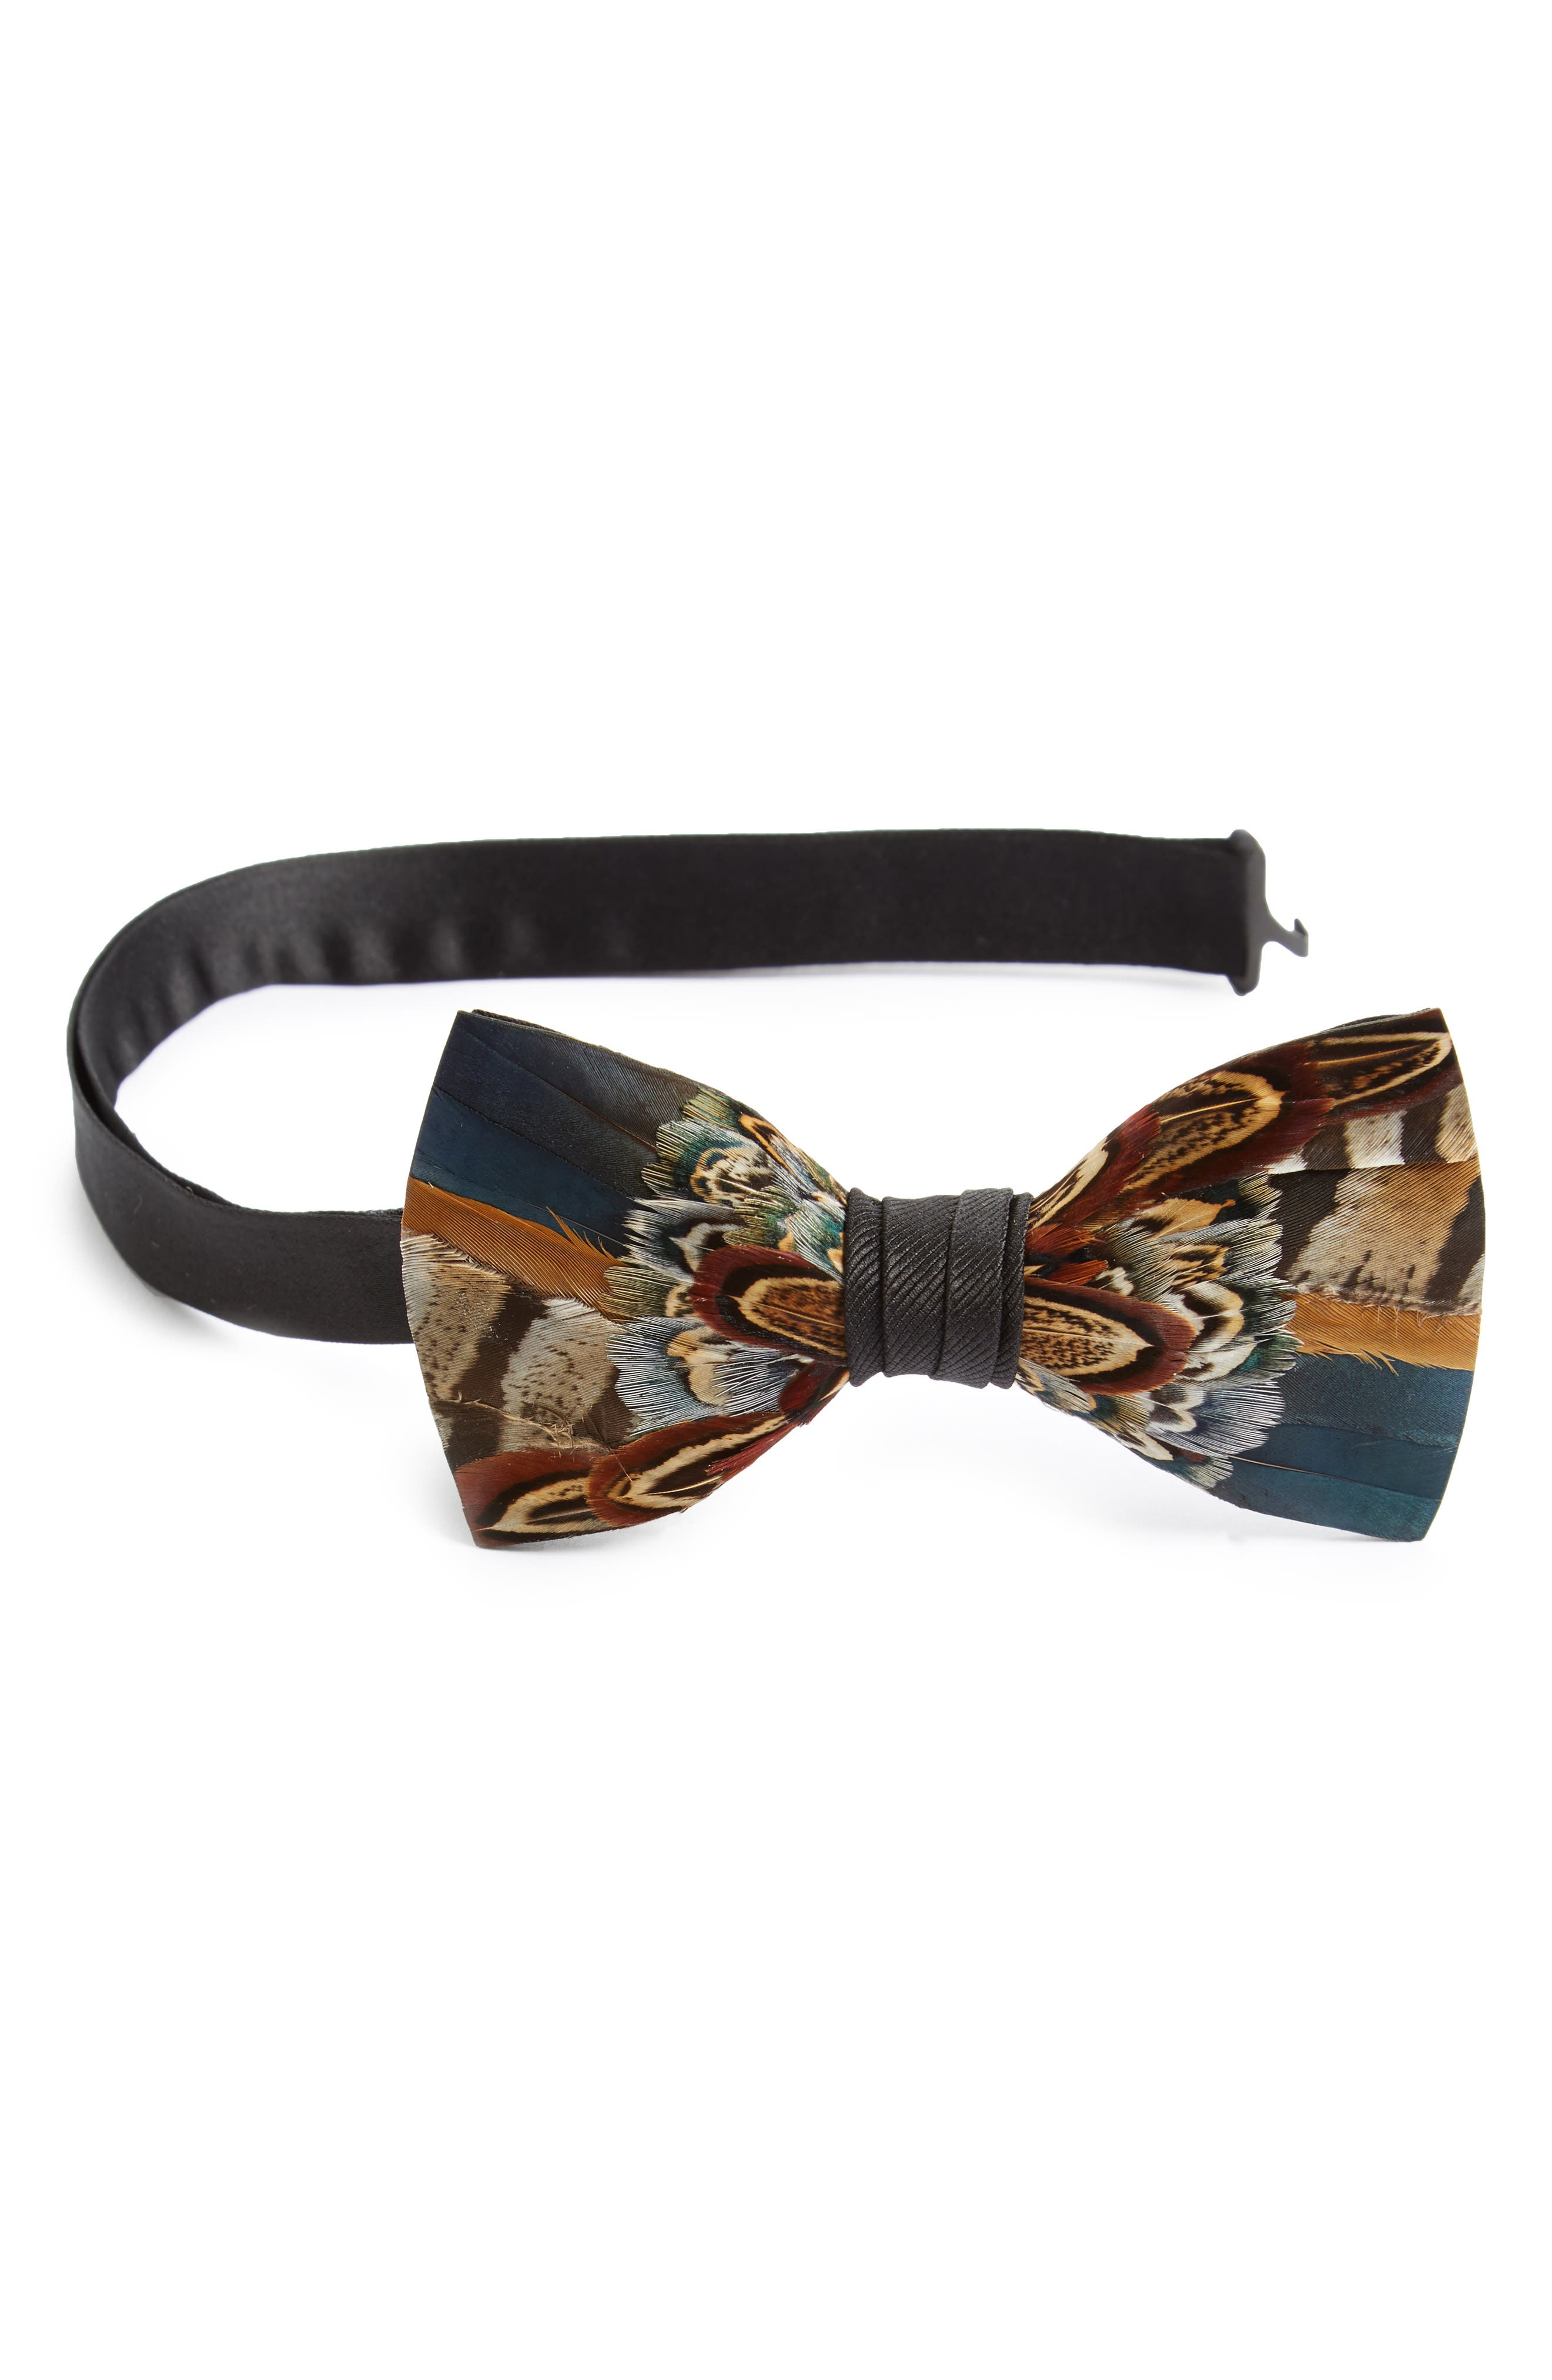 Alternate Image 1 Selected - Brackish & Bell Pollock Feather Bow Tie